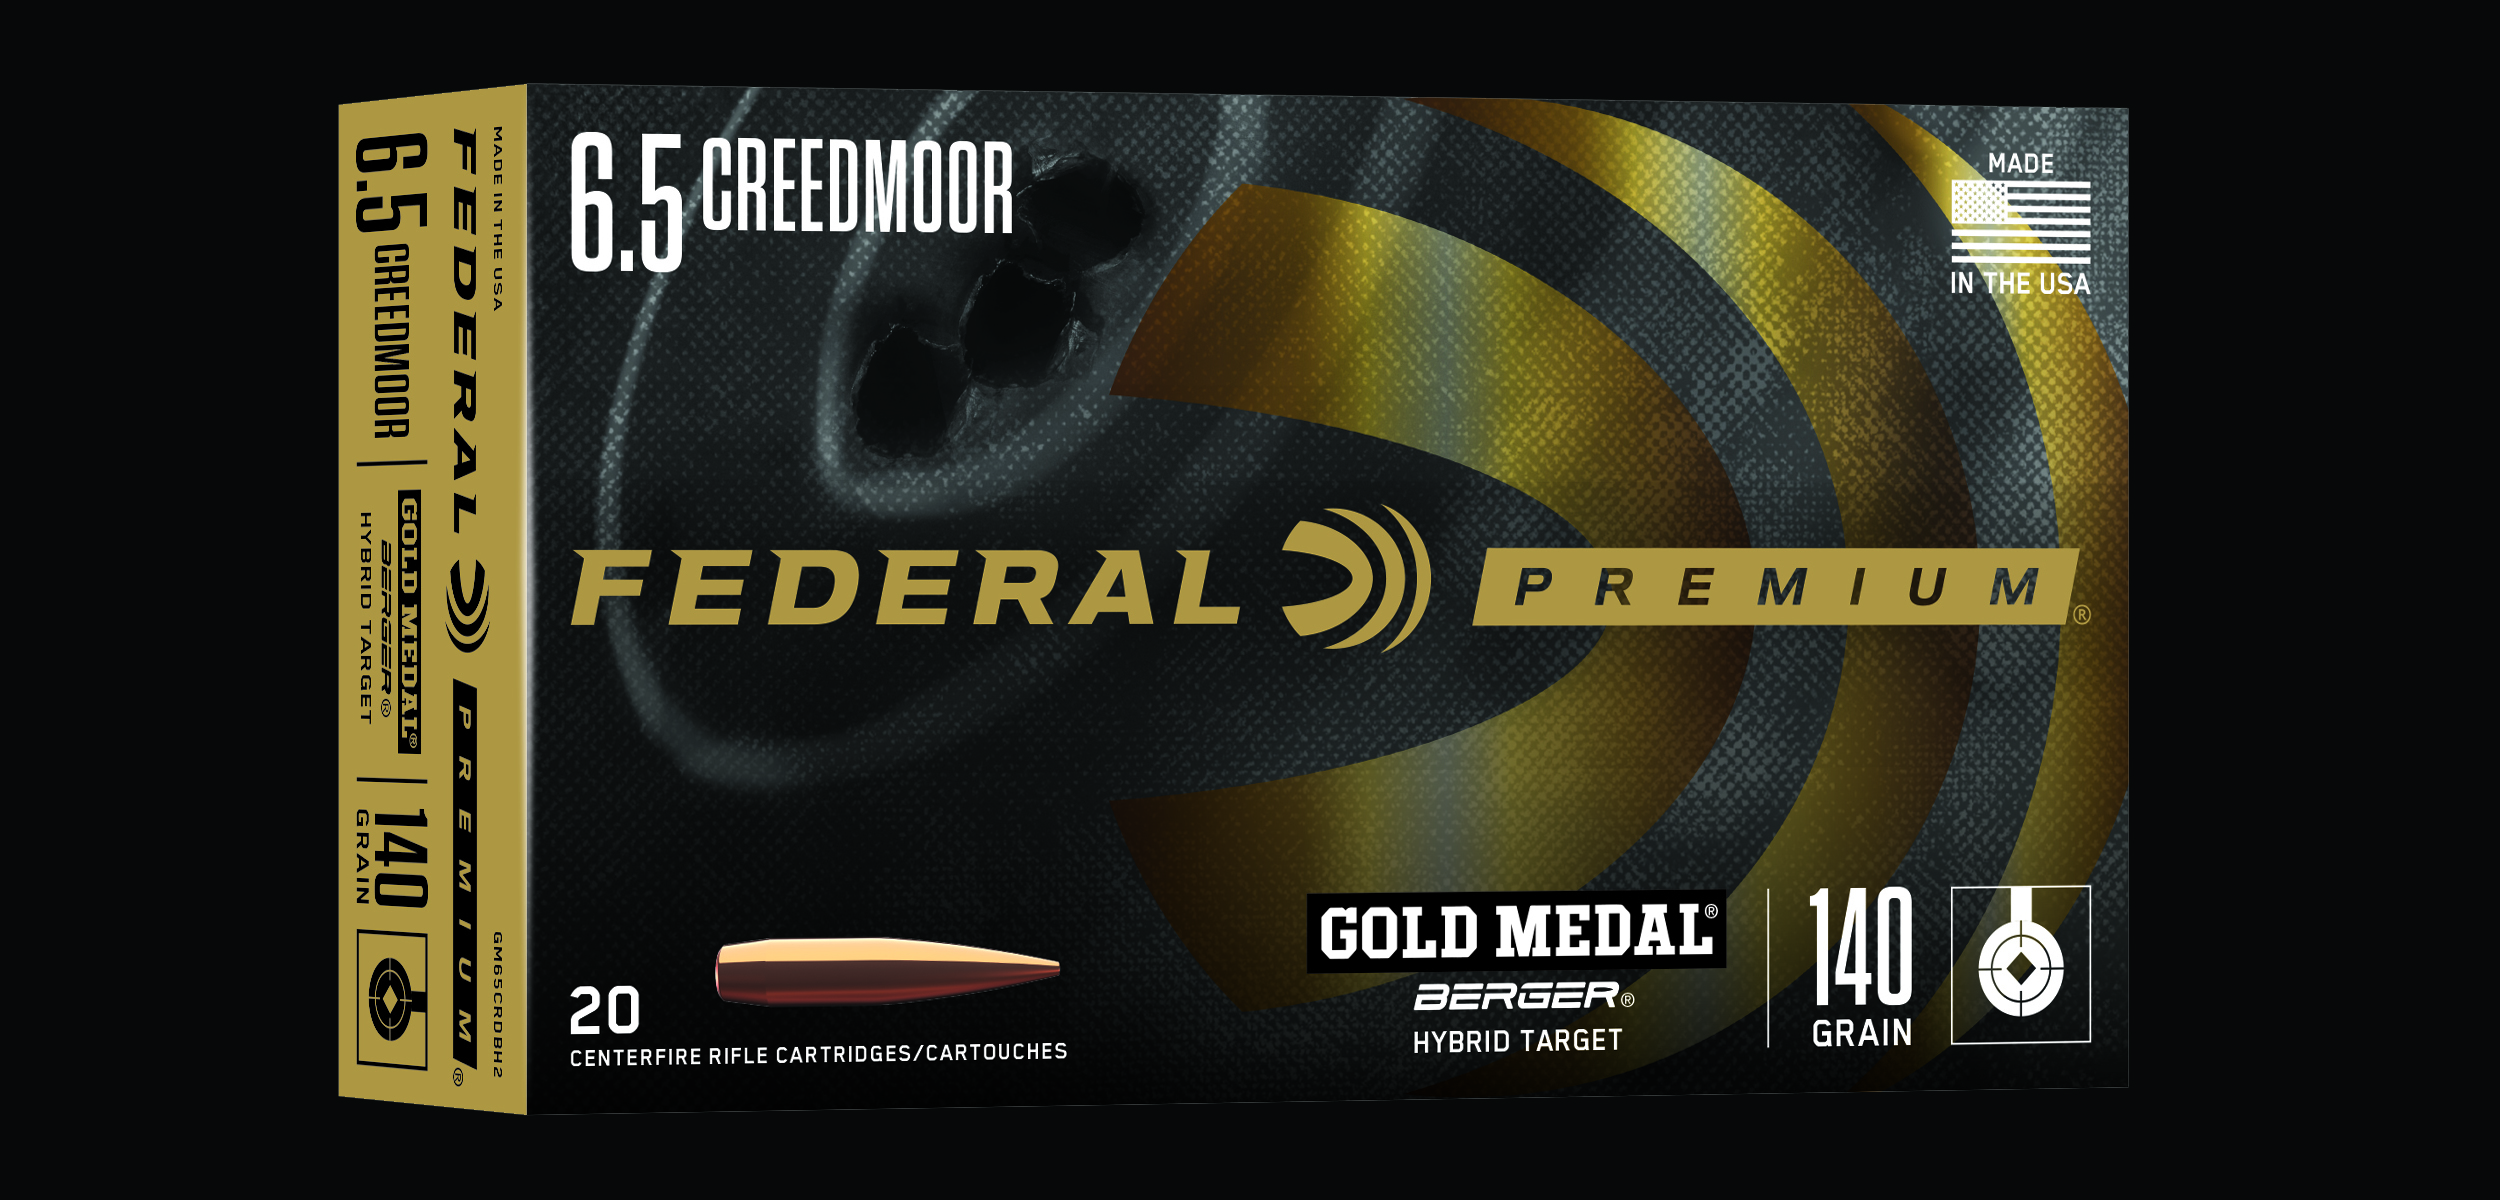 Federal Premium Expands Creedmoor Offerings in Gold Medal Berger Line